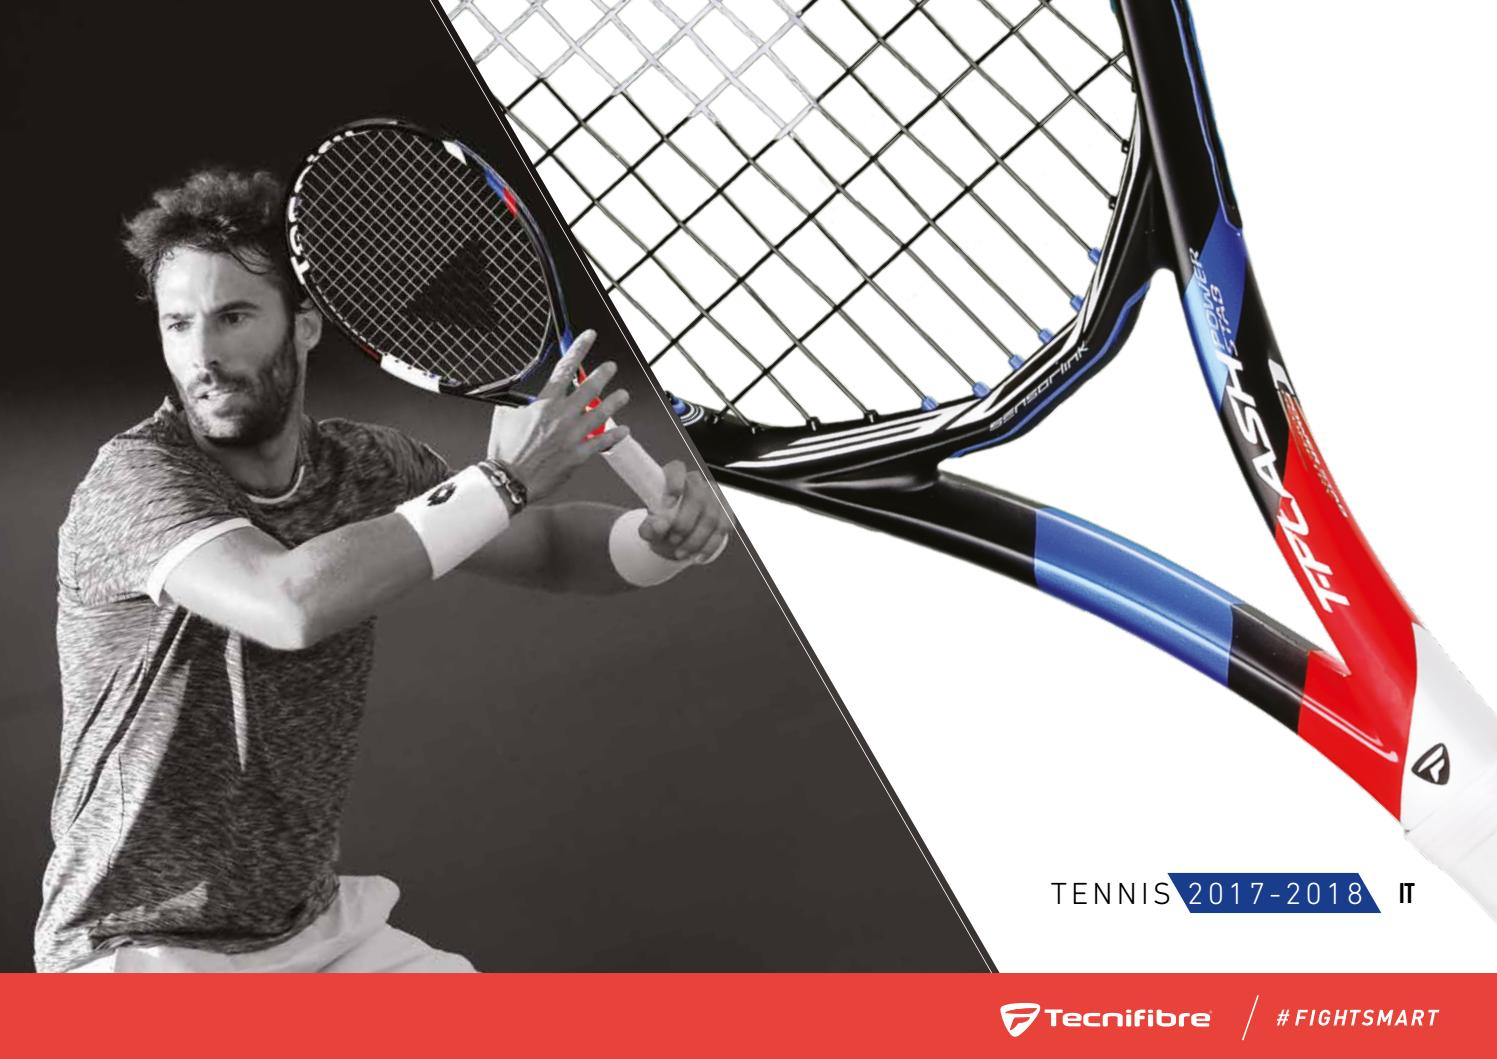 Tecnifibre X-ONE biphase 1.18 MM 18 squash cordes 200m Bobine